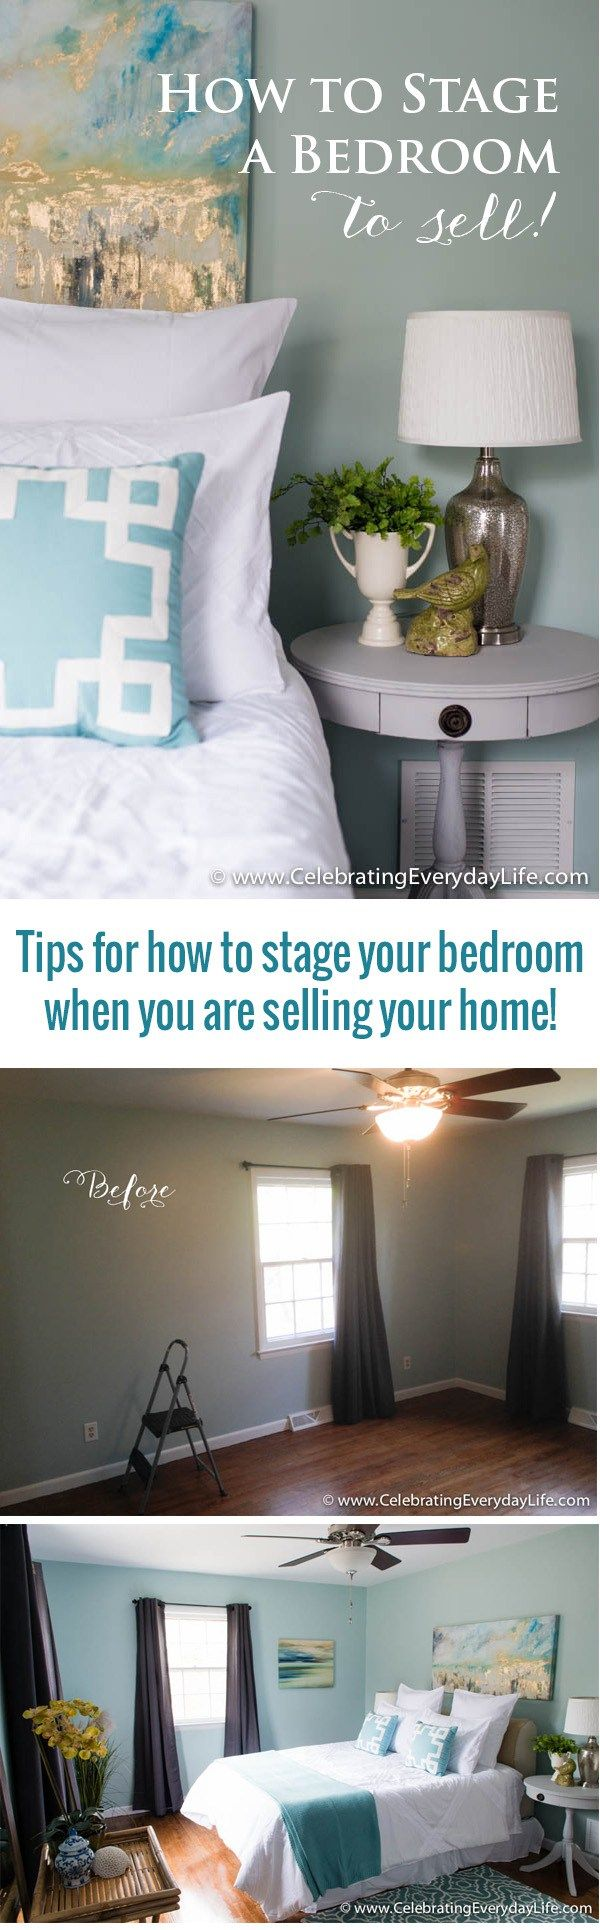 Home Staging Before + After, Home staging ideas, How to stage a bedroom, decorate a bedroom for sale, celebrating everyday life with jennifer carroll